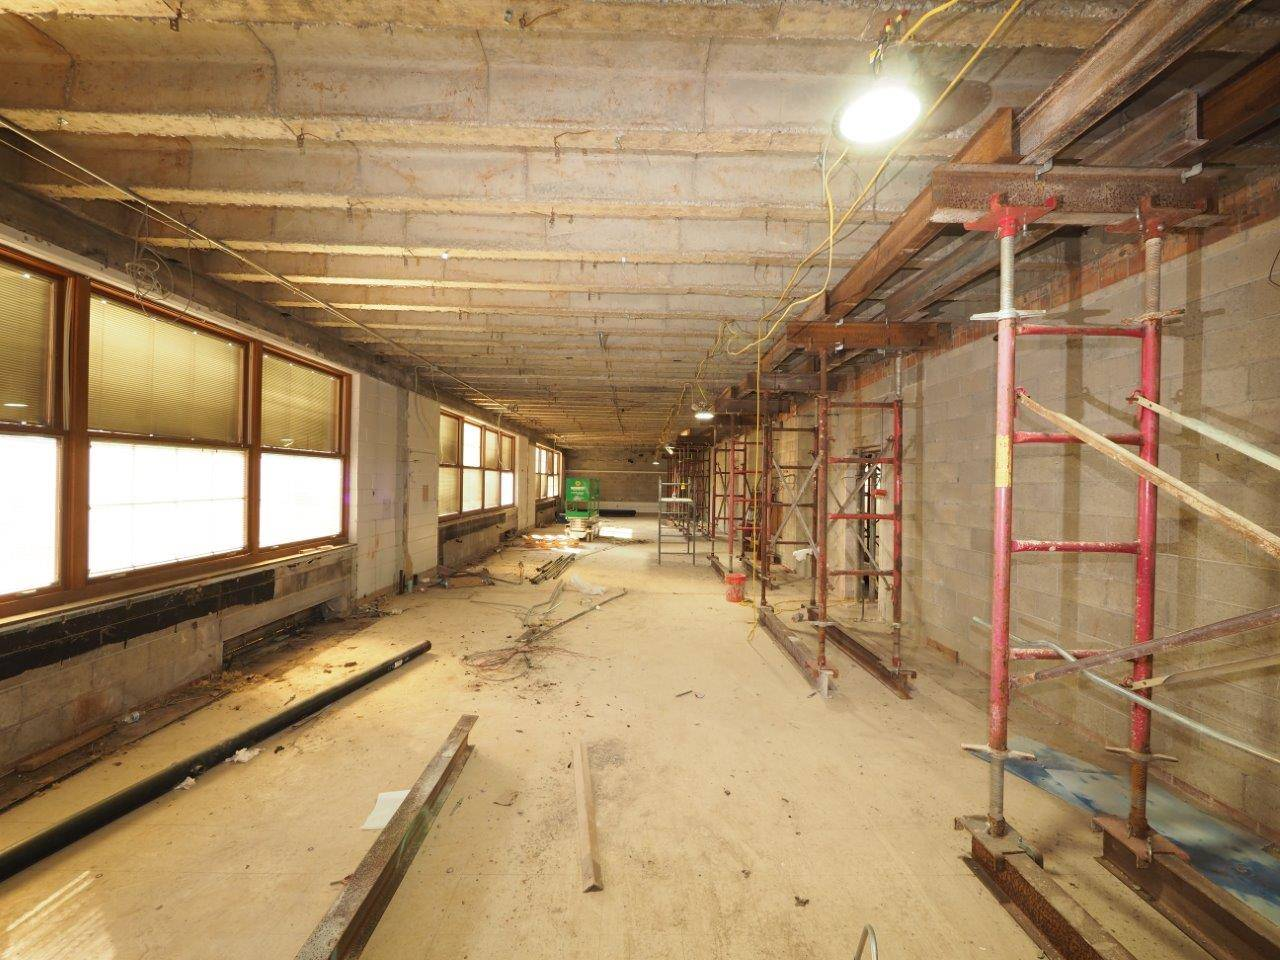 Ongoing interior renovations in older areas of the building